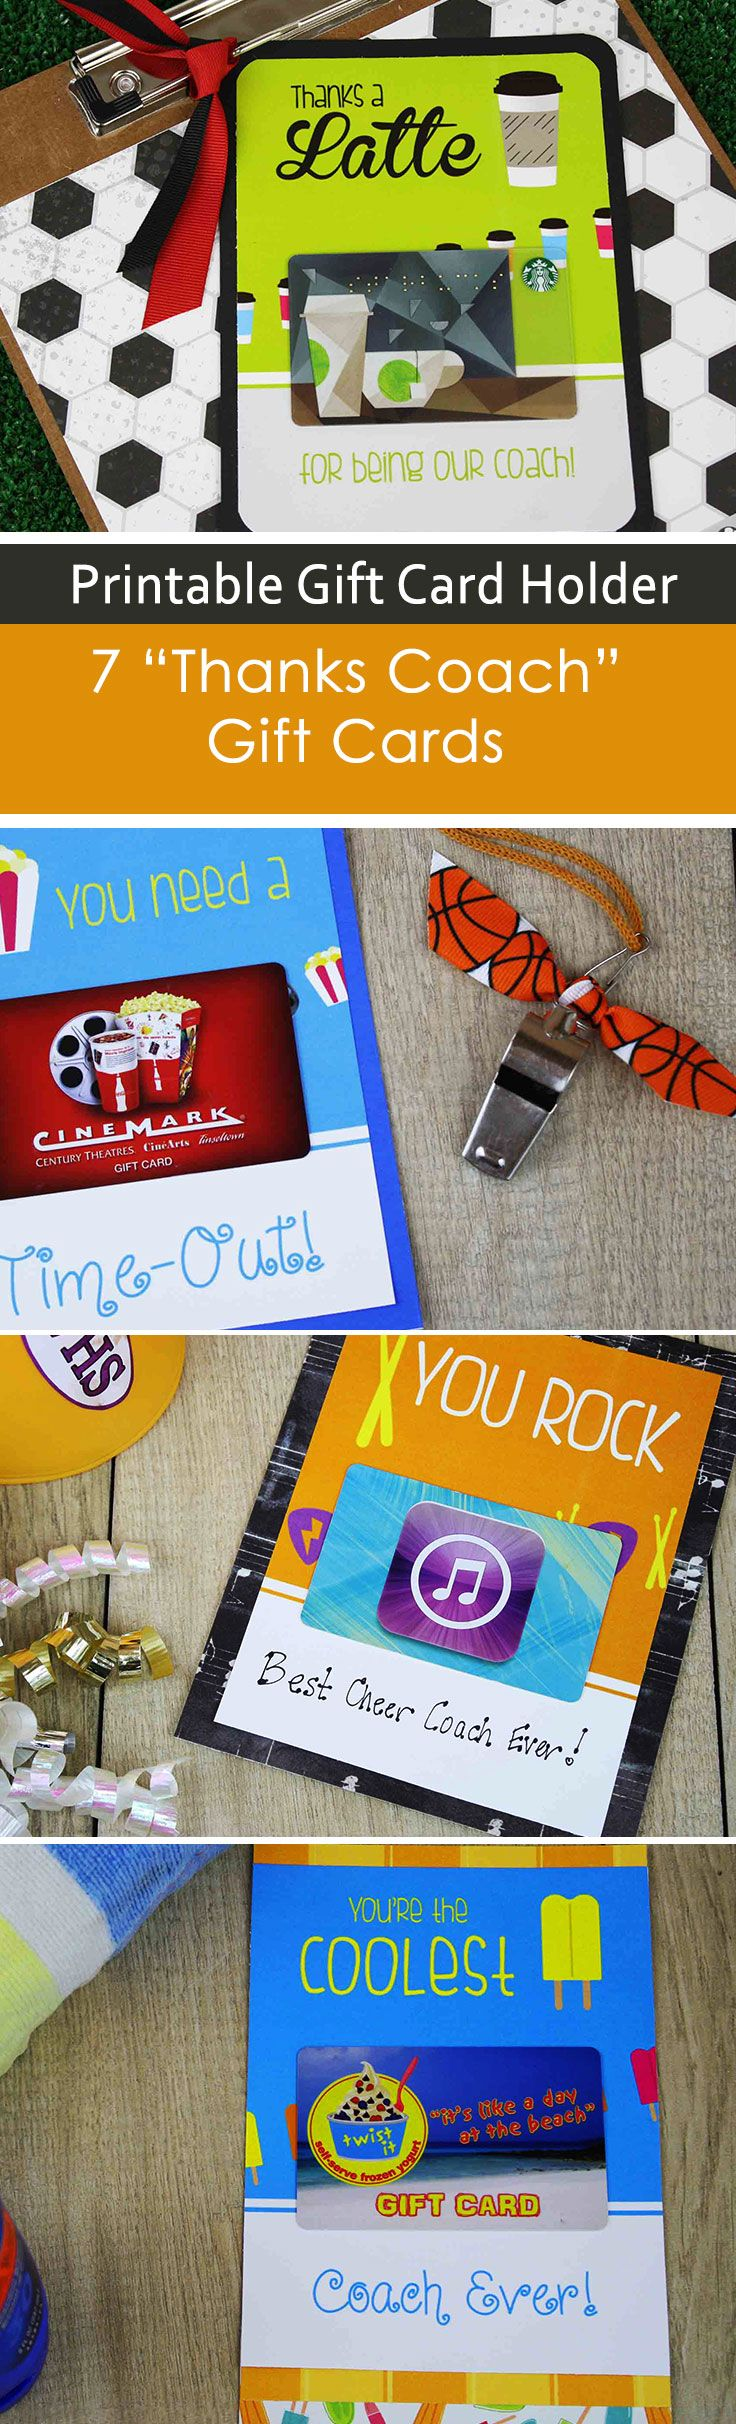 A series of seven printable gift card holders for your coaches. End of season? There's a great gift card holder for your cheer coach, soccer coach, and more. Male and Female coach choices too!